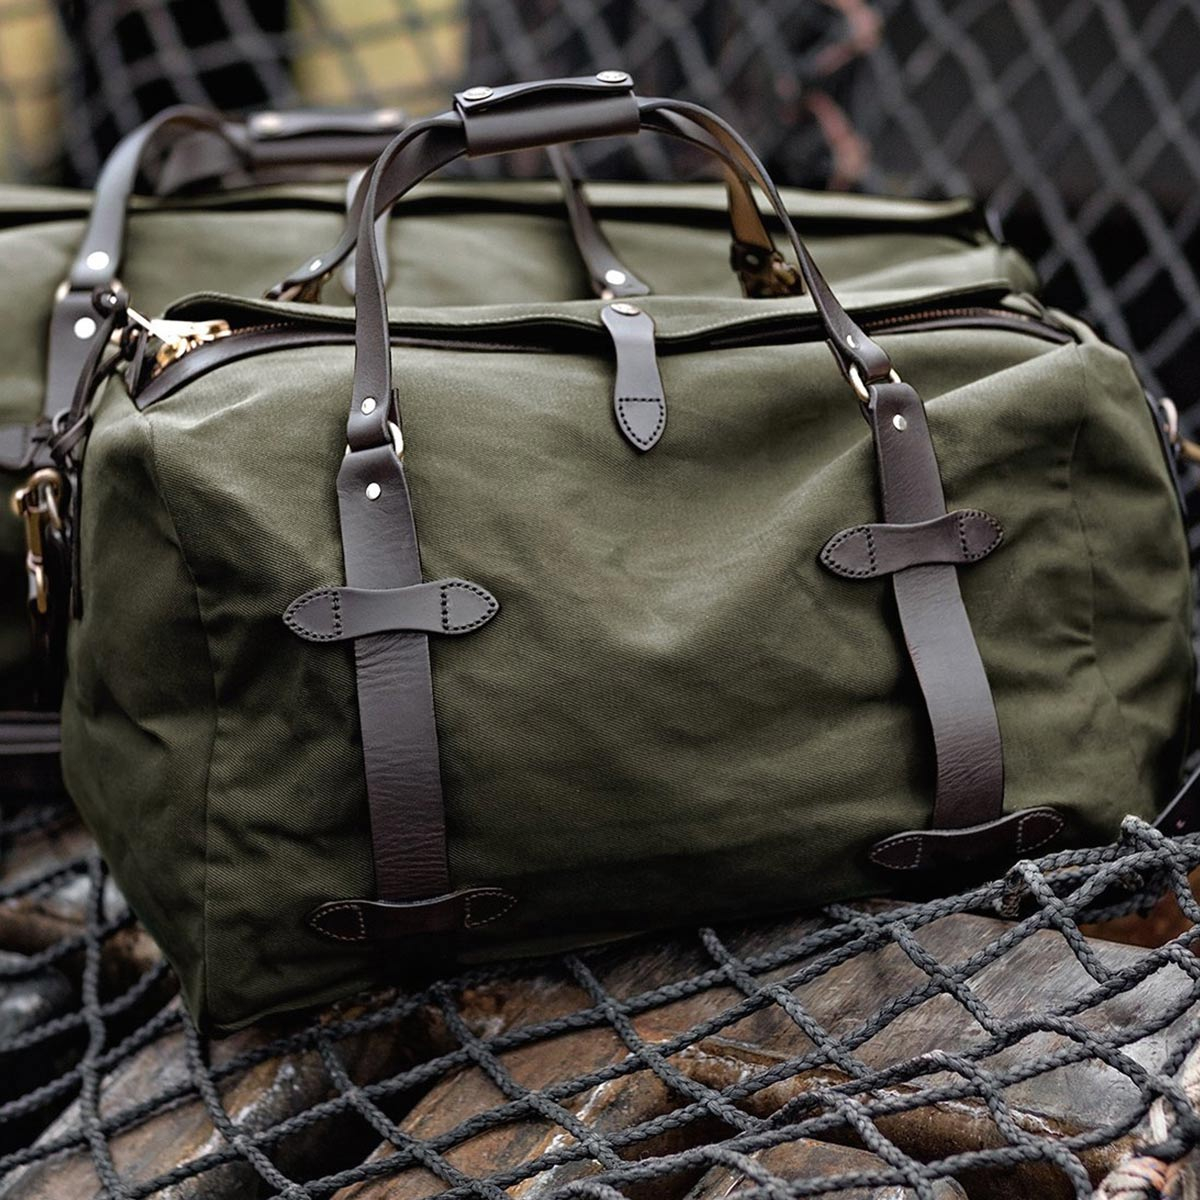 Filson Duffle Medium Otter Green, perfect for a weekend away or a small business-trip